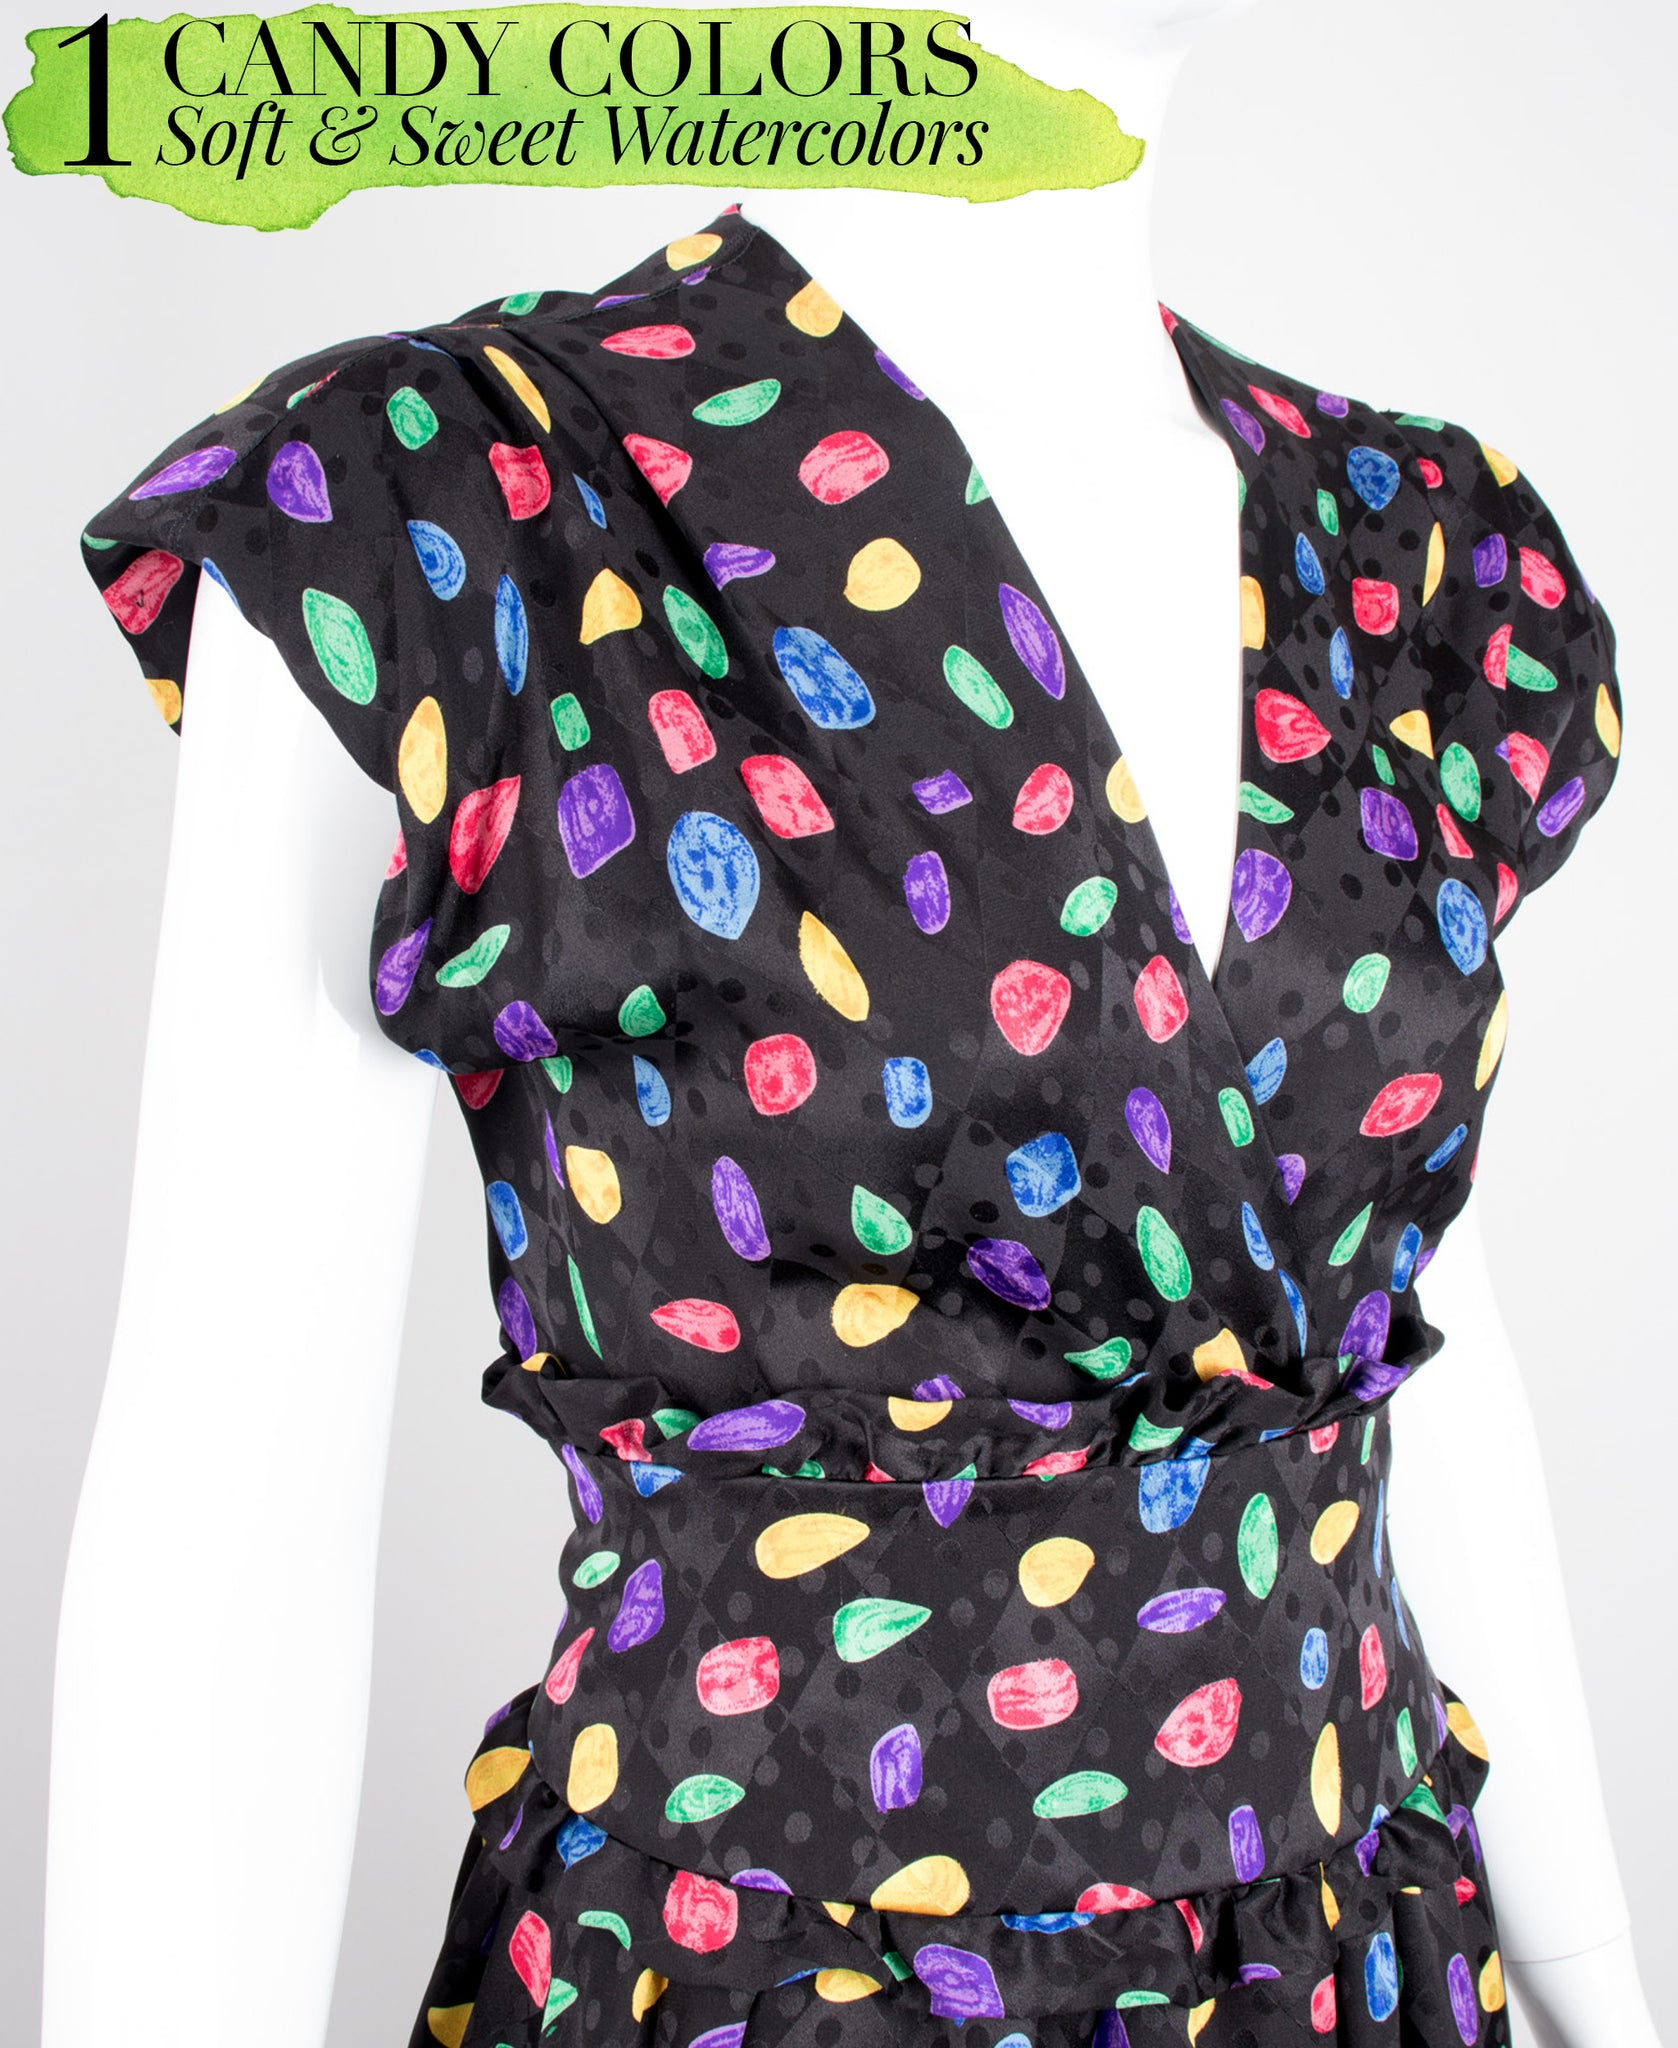 Recess Dress Code Artistic Expressions Painterly Prints Richilene Candy Crush Dress